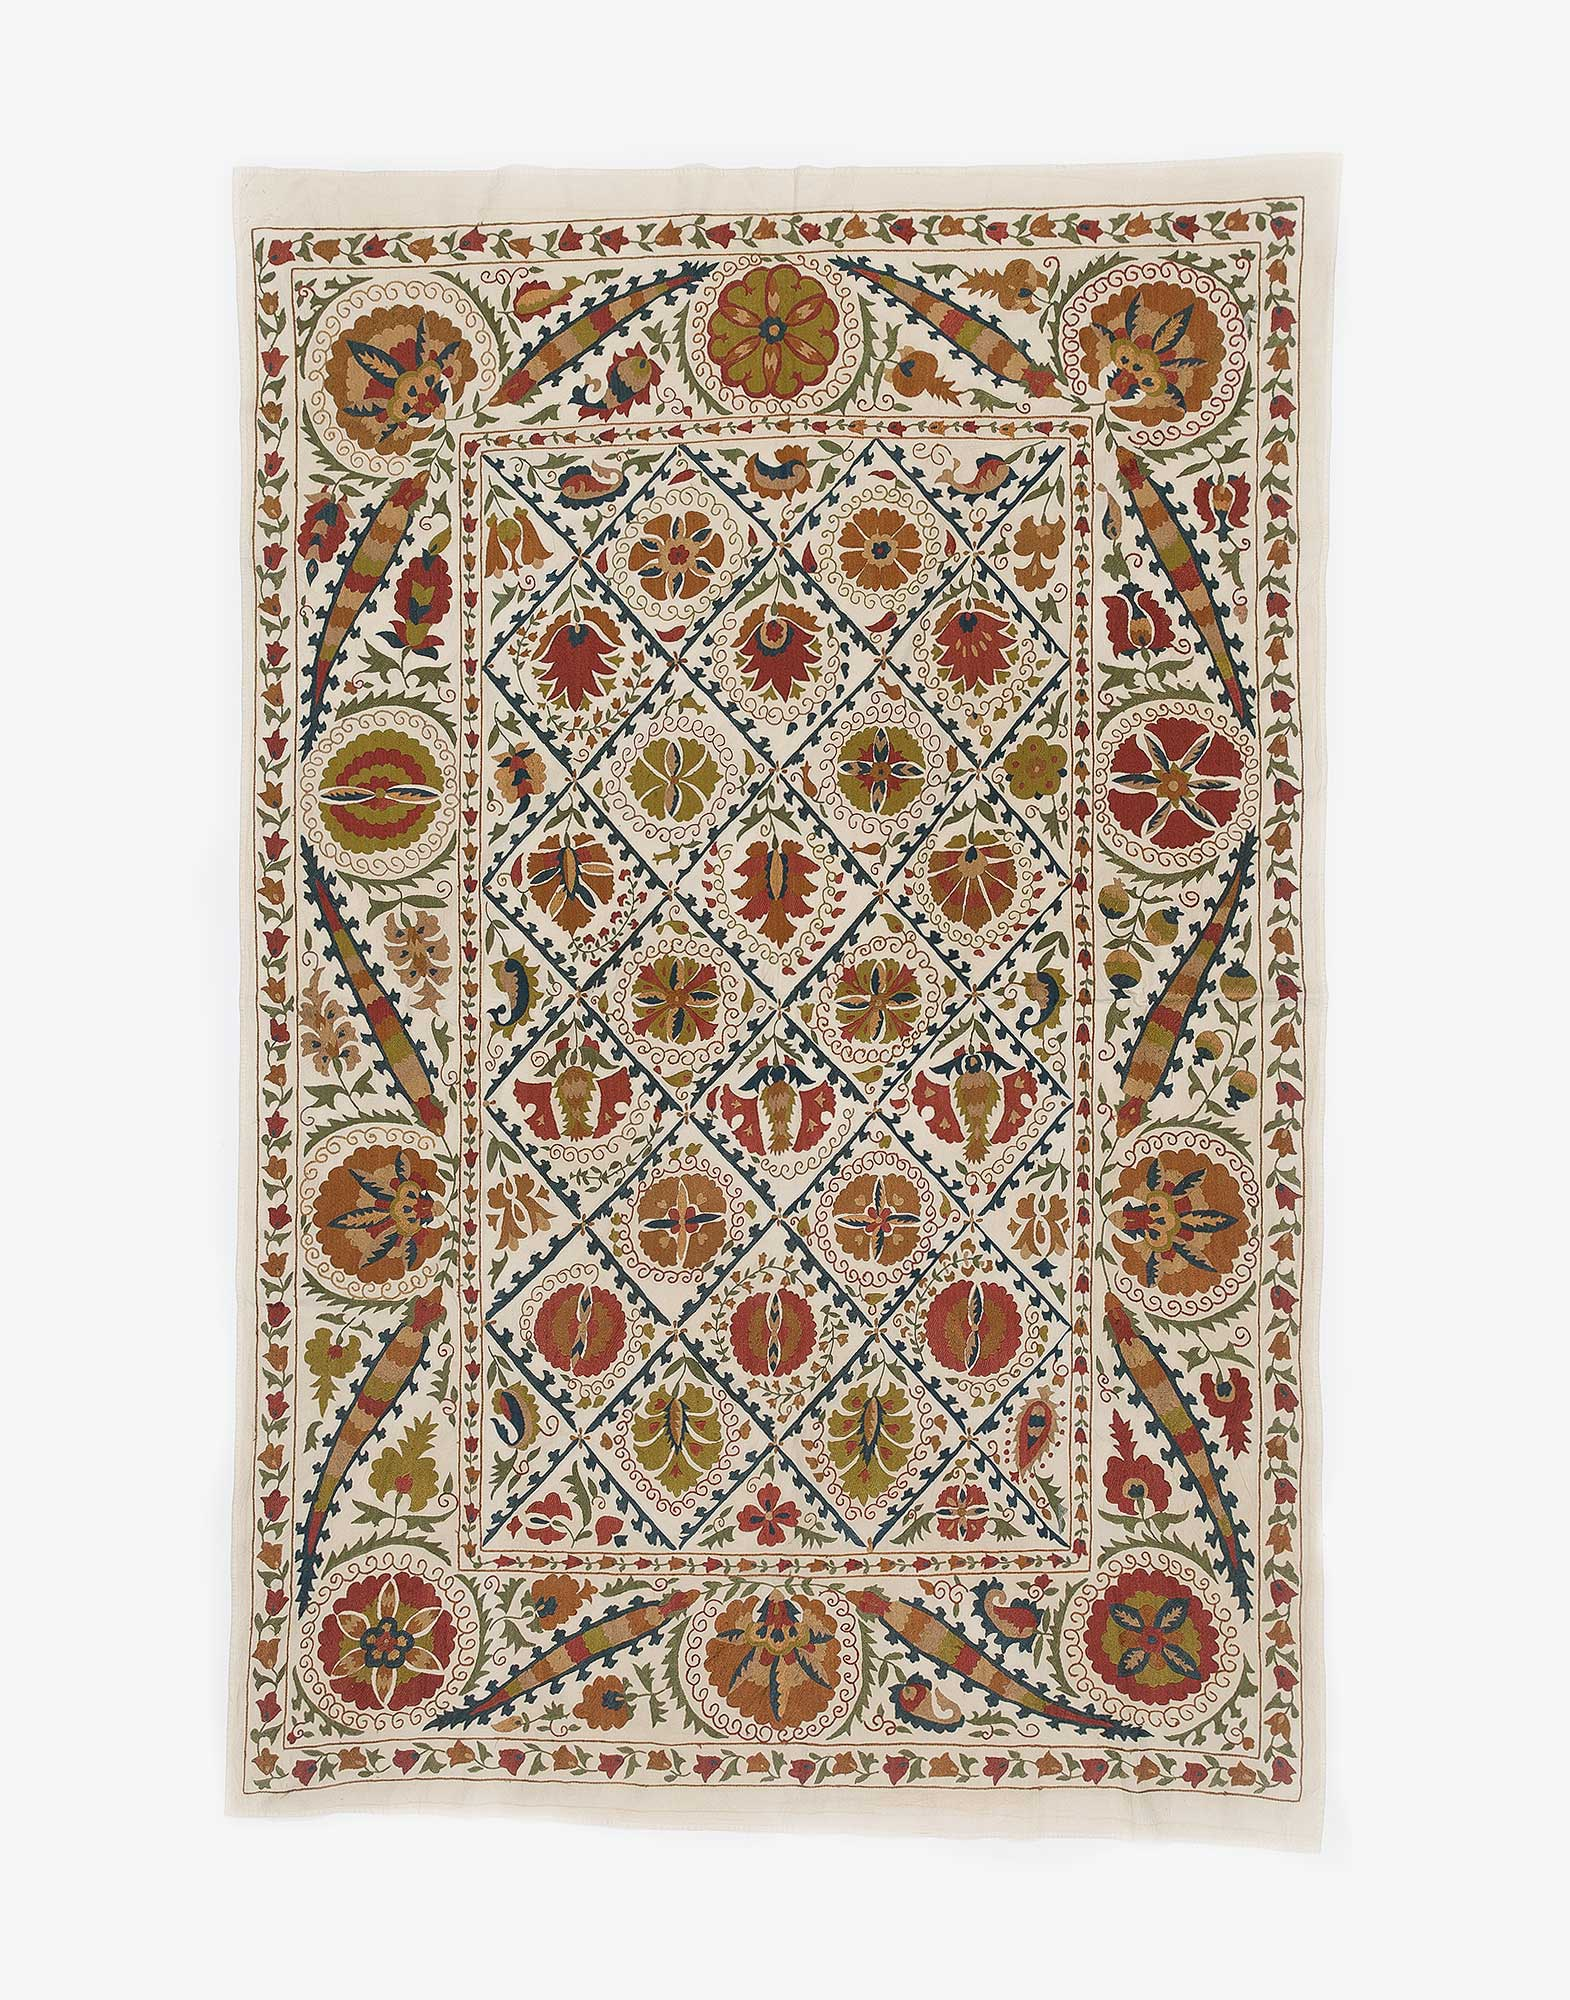 Uzbek Suzani Embroidered Bed Cover